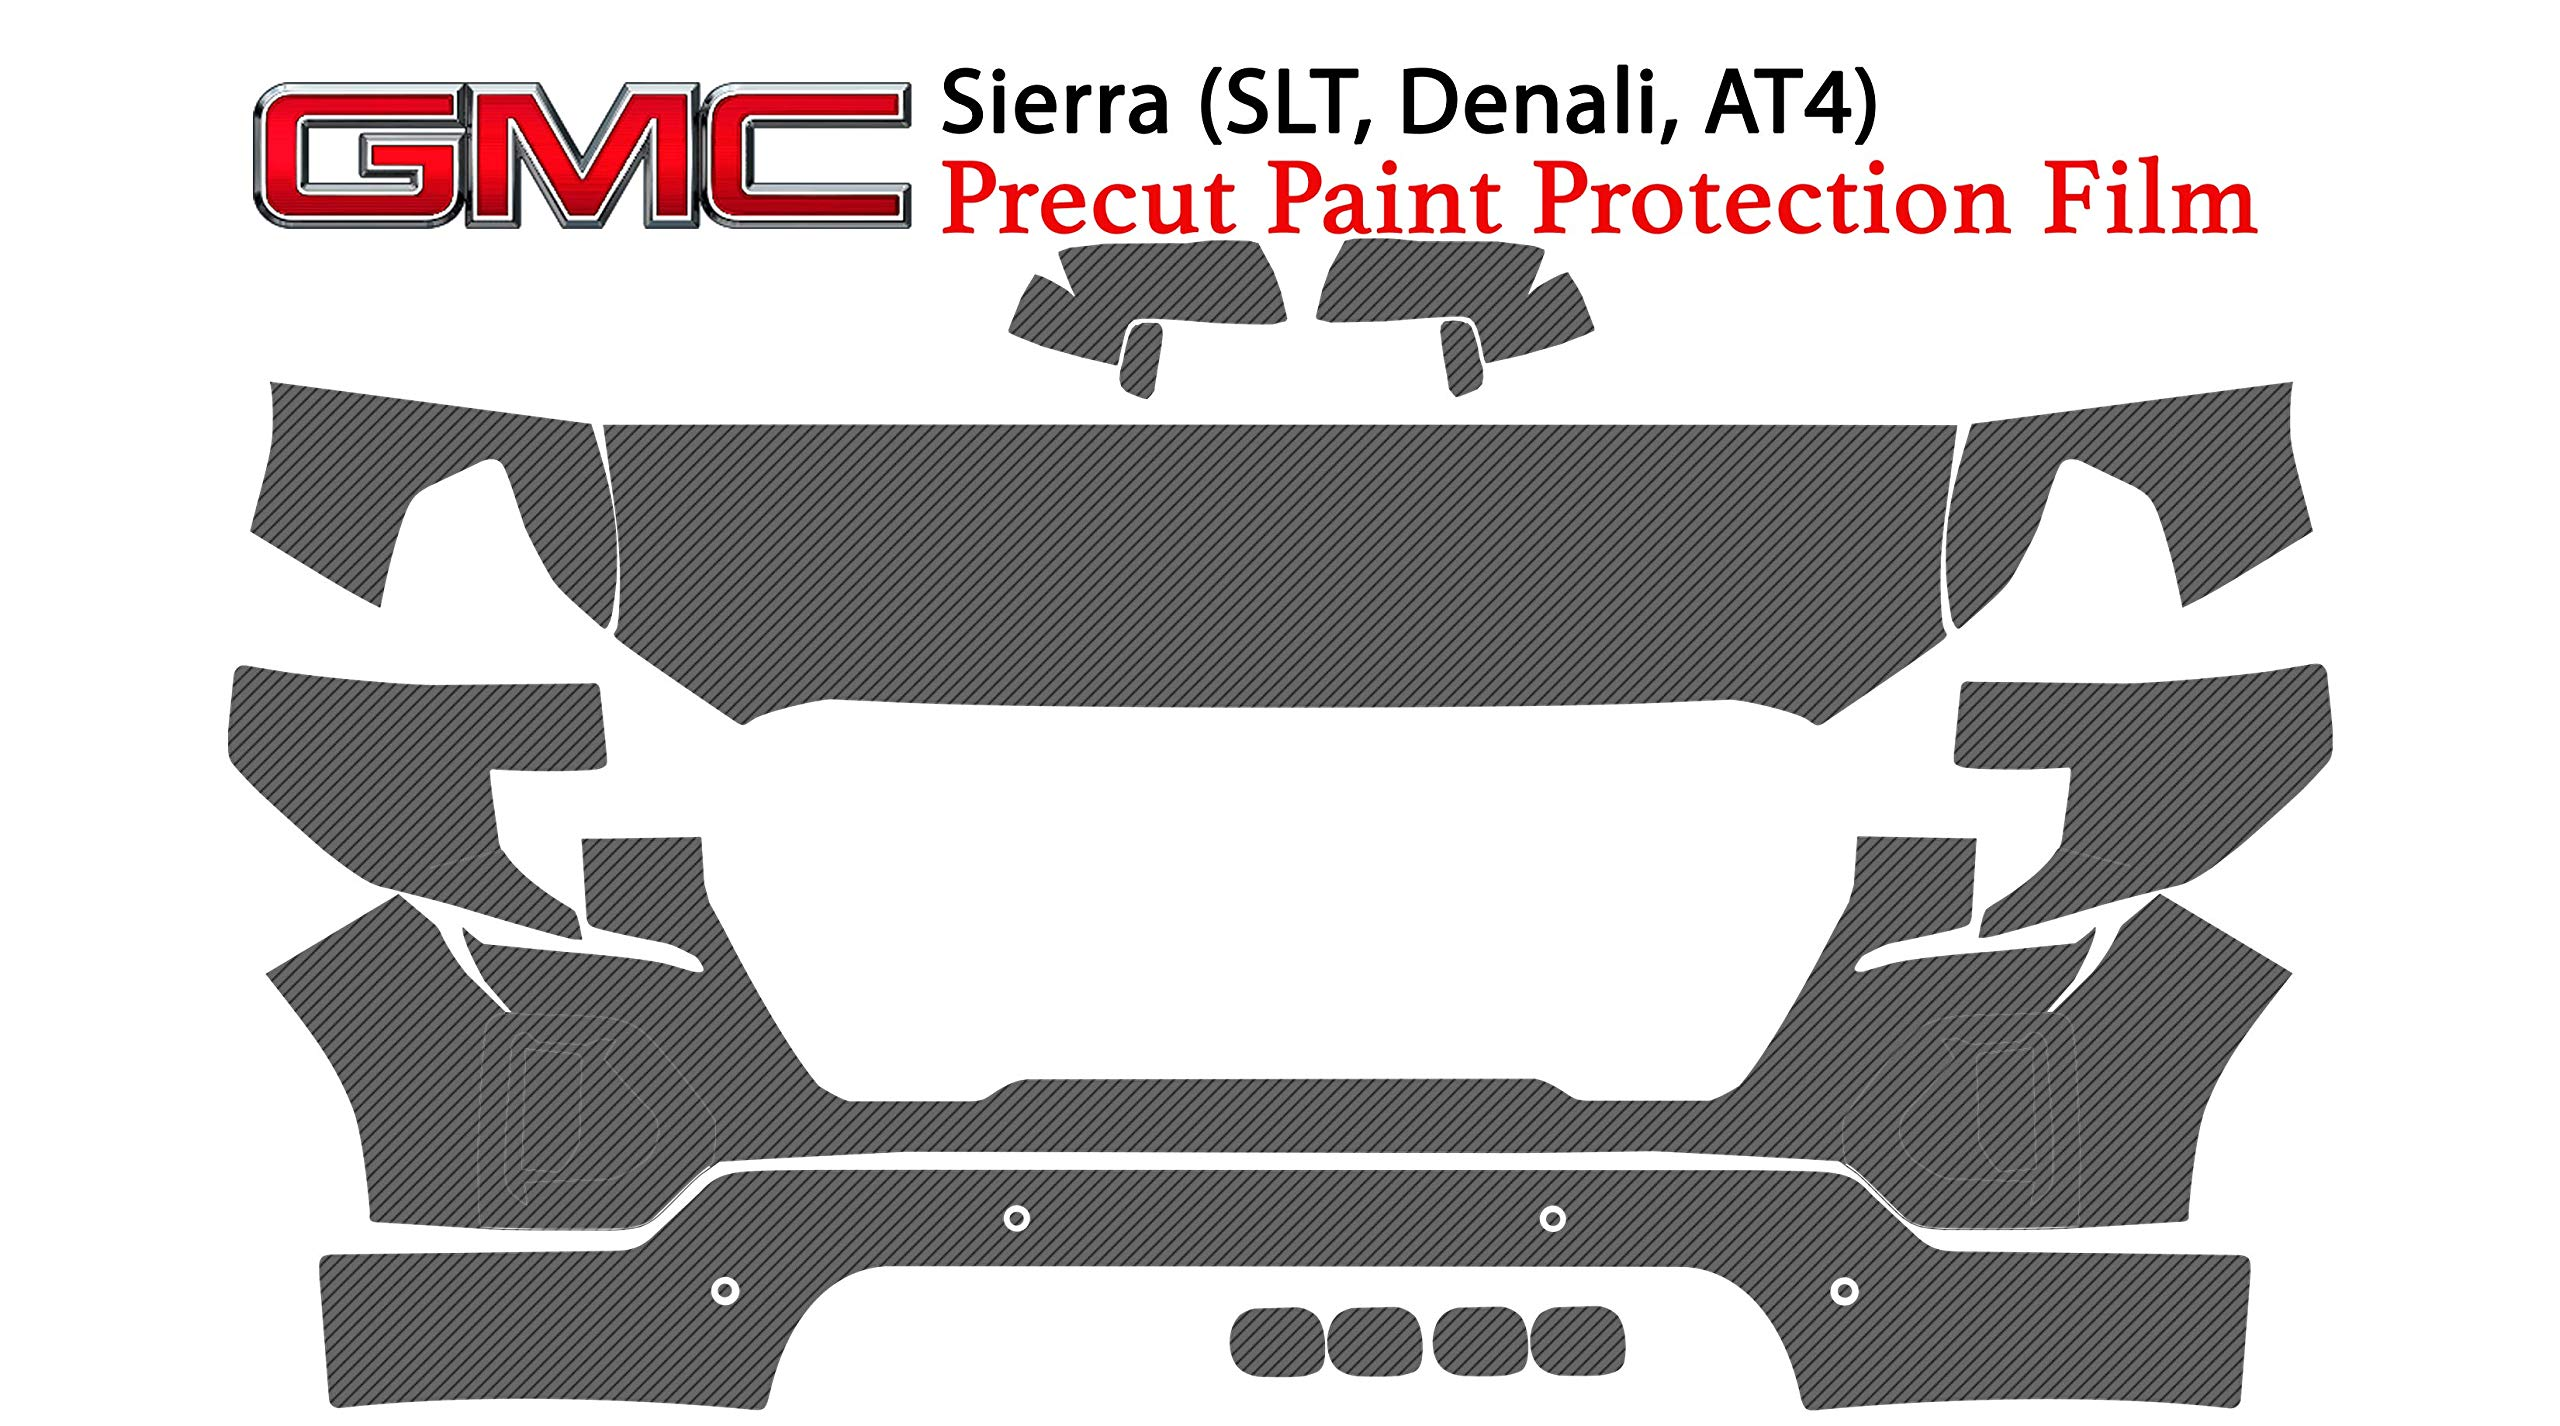 The Online Liquidator Full Front Protective Film GMC Sierra 1500 2019 - Clear Bra Professional Car Paint Shield Cover